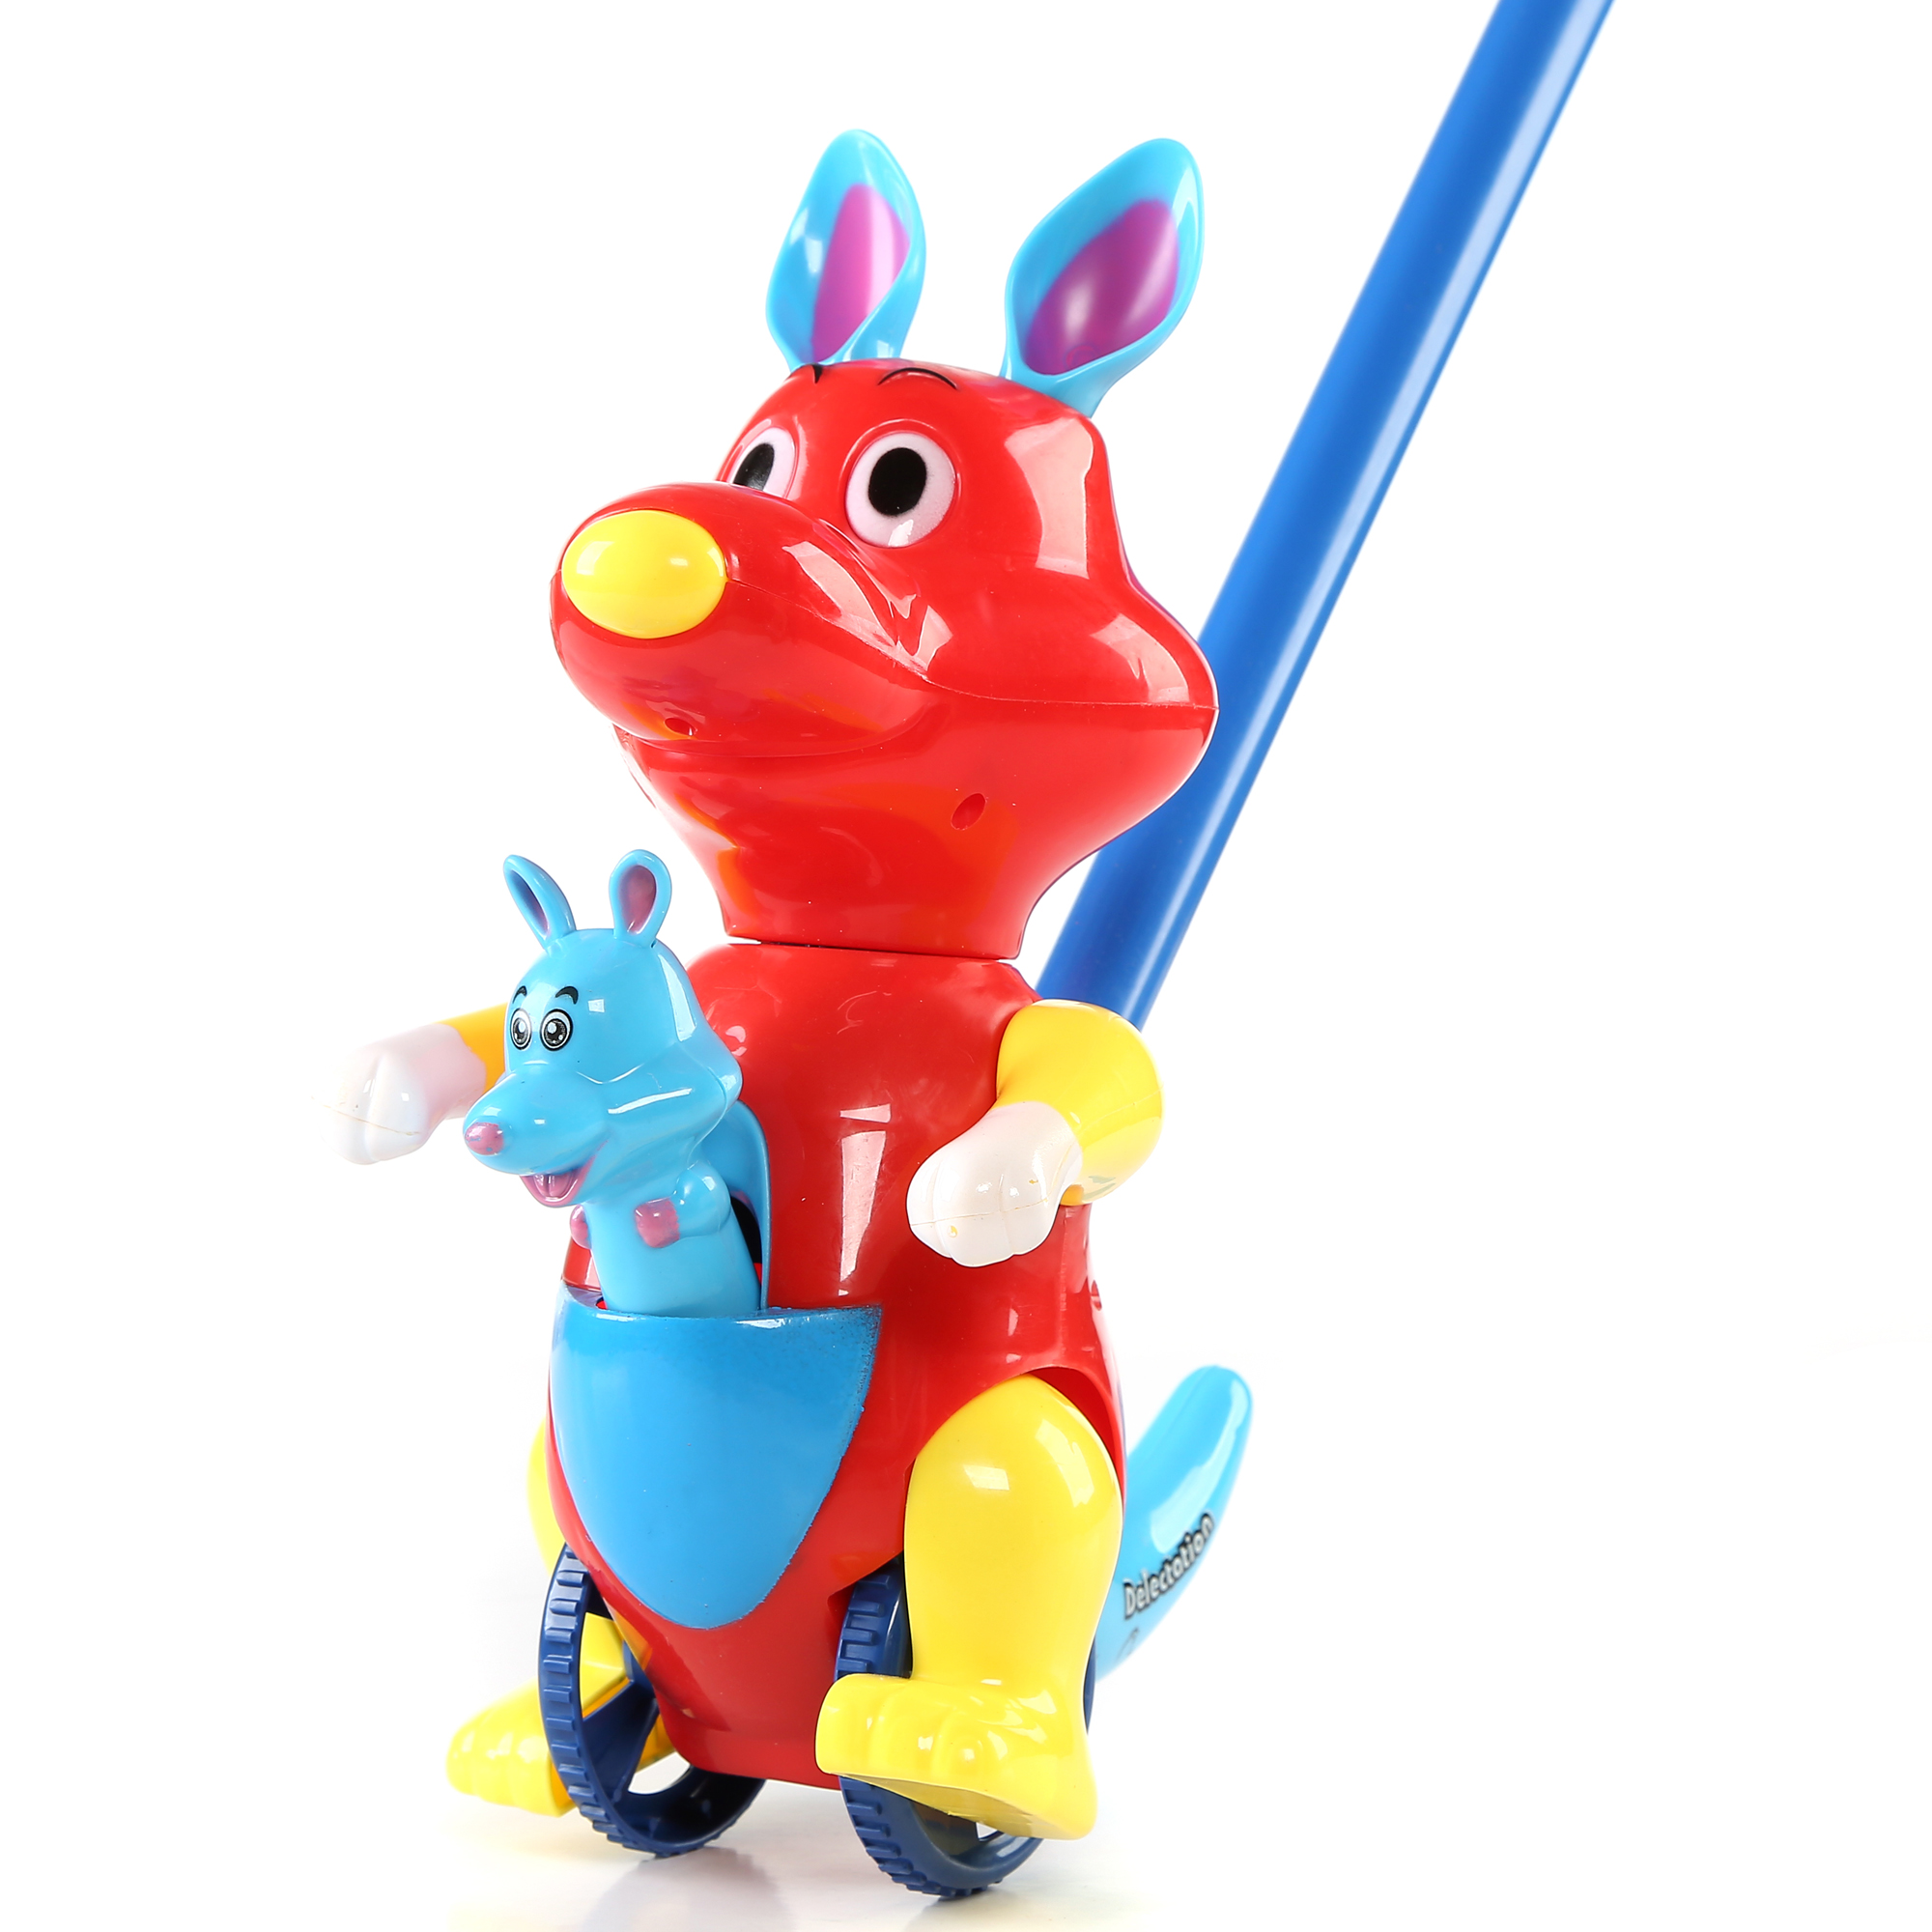 10 Inch Kangaroo Push Toy